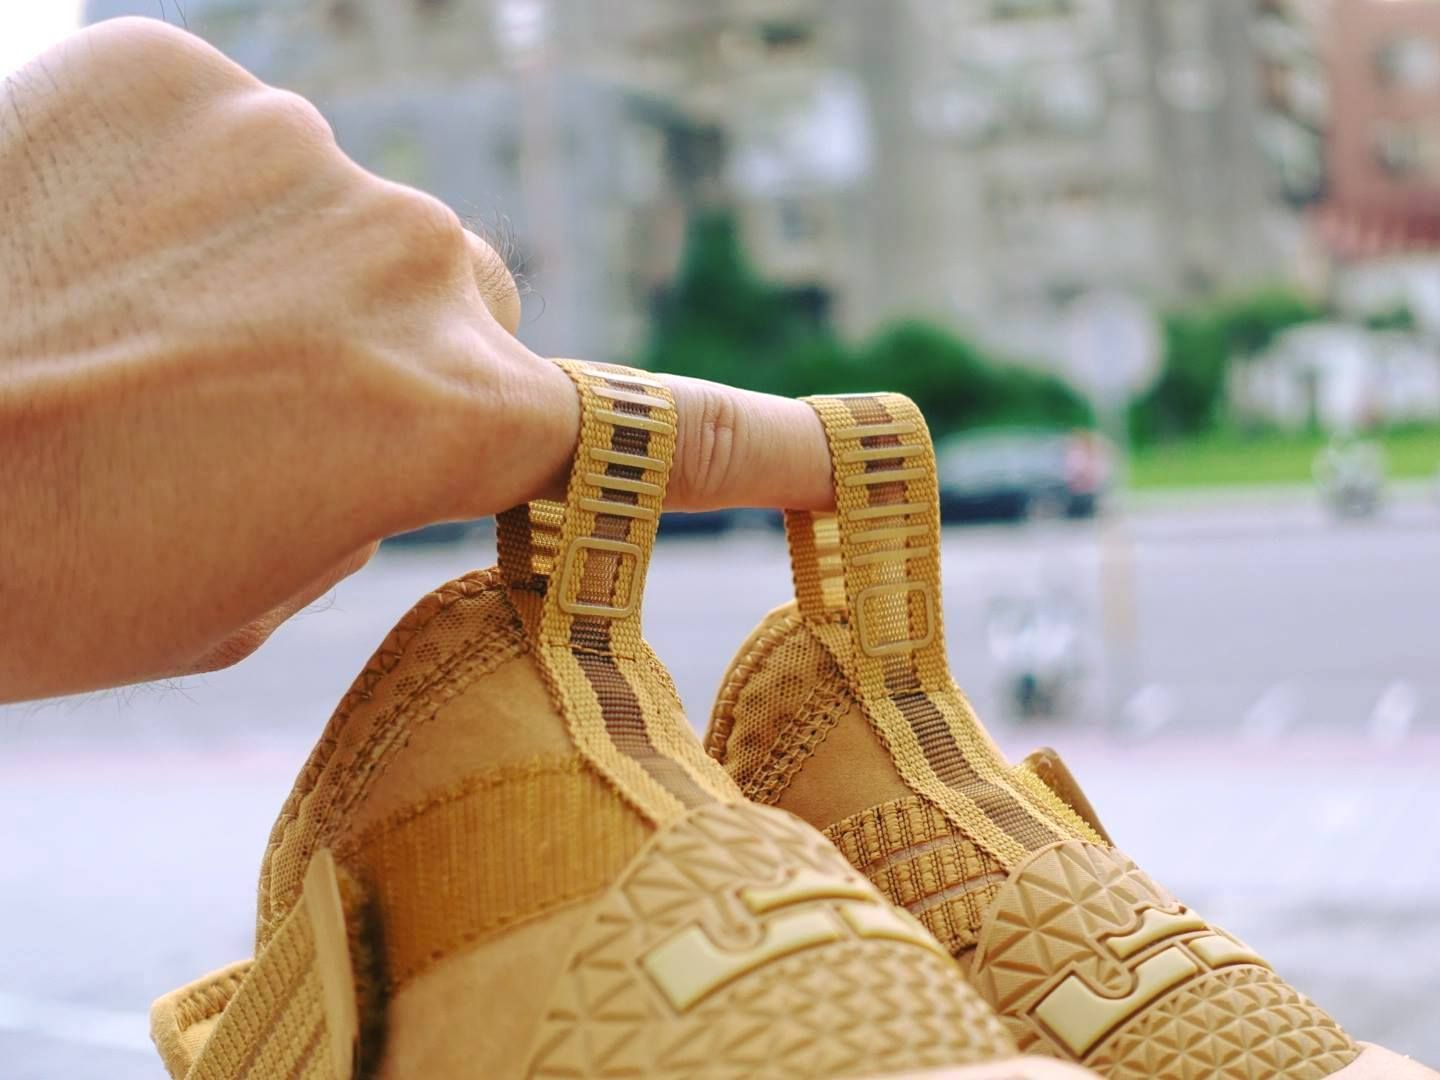 fd51d4a096c Nike LeBron Soldier 11 SFG Wheat Release Date 897647-700 (6 ...